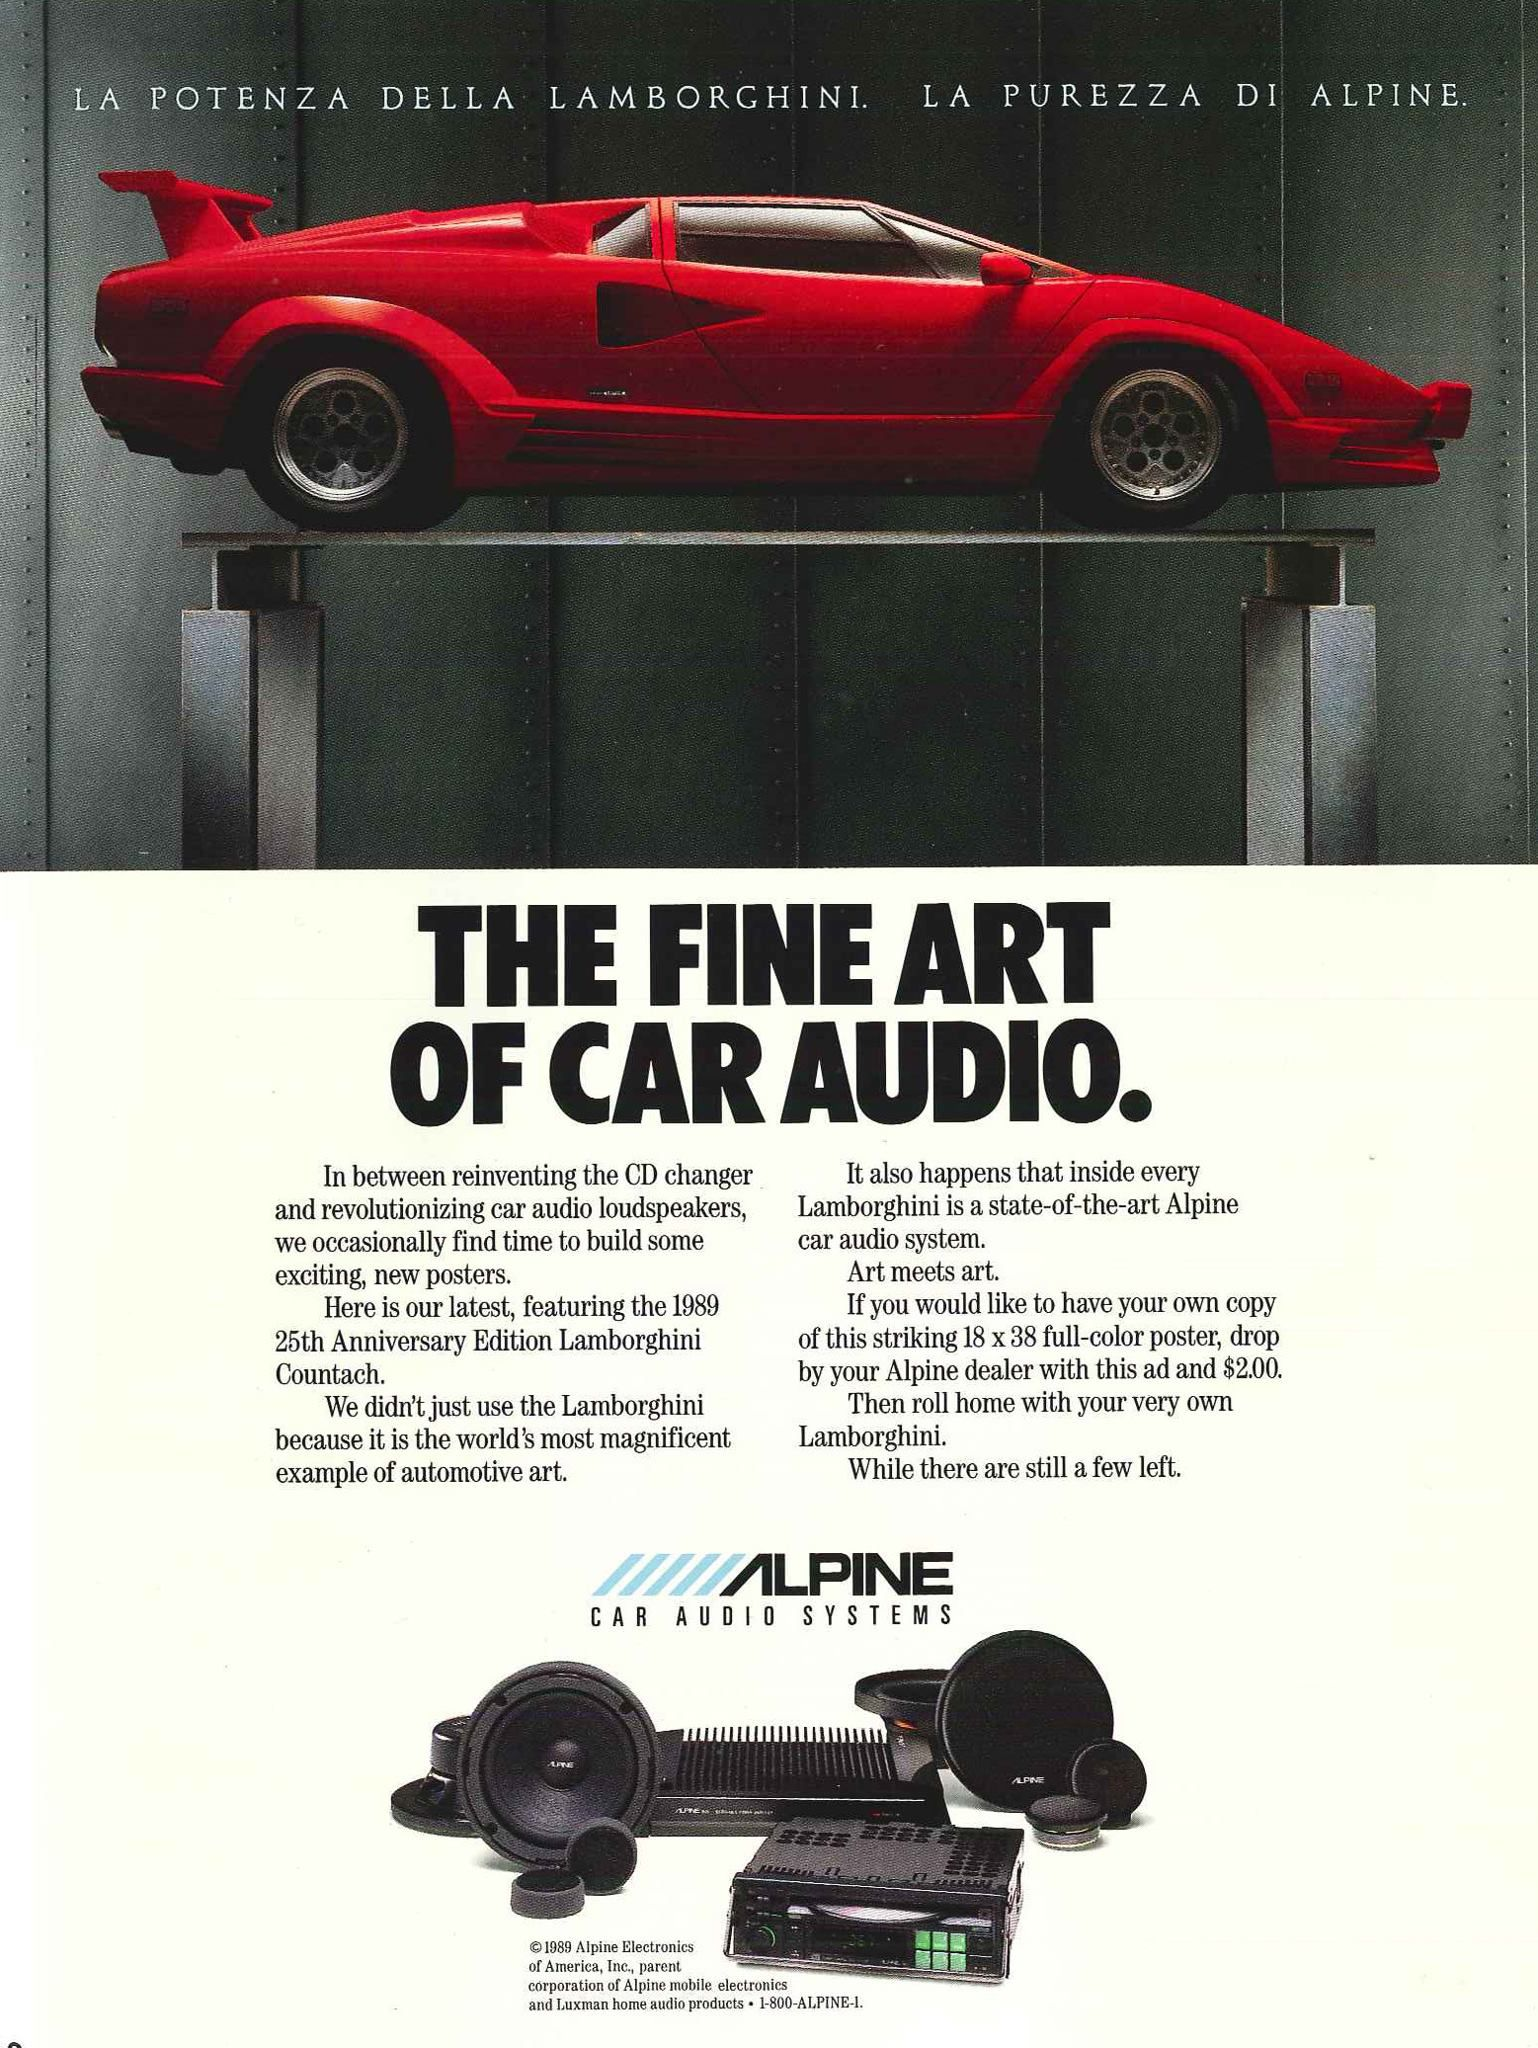 Your Vintage Audio Deals Finds Perpetual Thread Ars Technica The Alpine Car Stereo Thats Pretty Cool Rolo Ive Actually Been Looking At Old Ads And Recalling Lusting After An